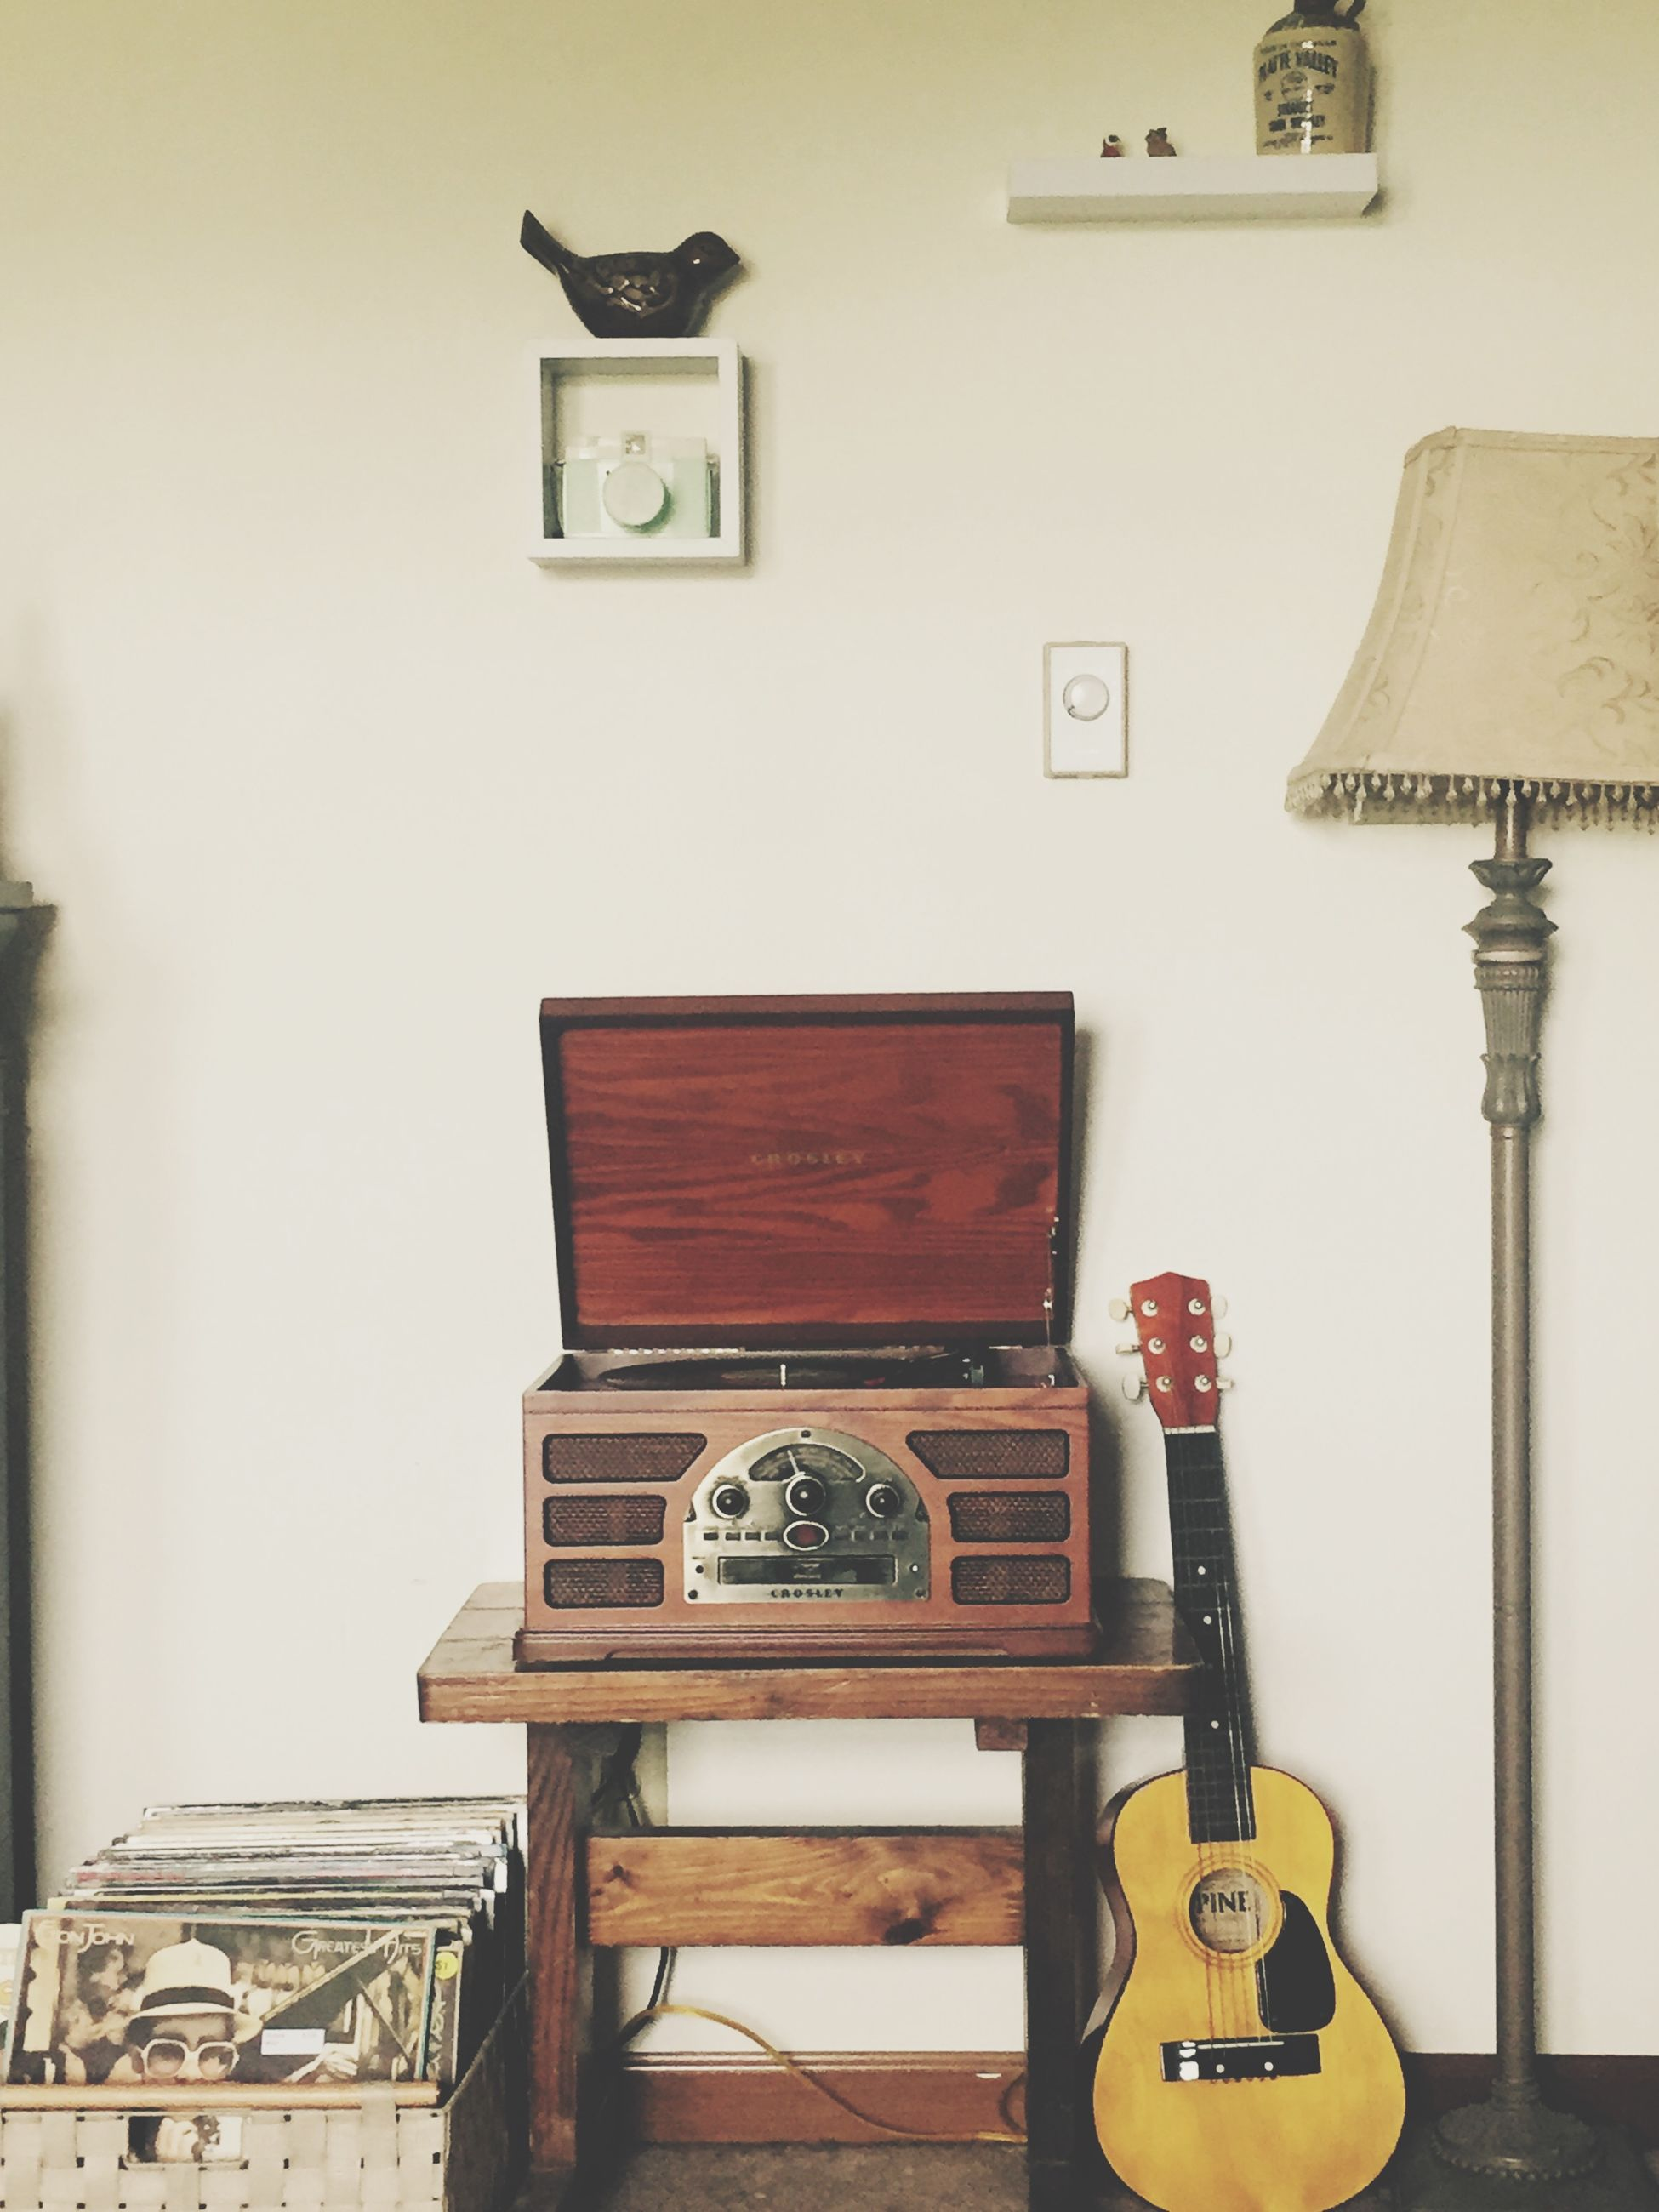 indoors, communication, wall - building feature, retro styled, old-fashioned, technology, wood - material, text, table, close-up, still life, no people, home interior, telephone, door, wall, antique, old, metal, western script